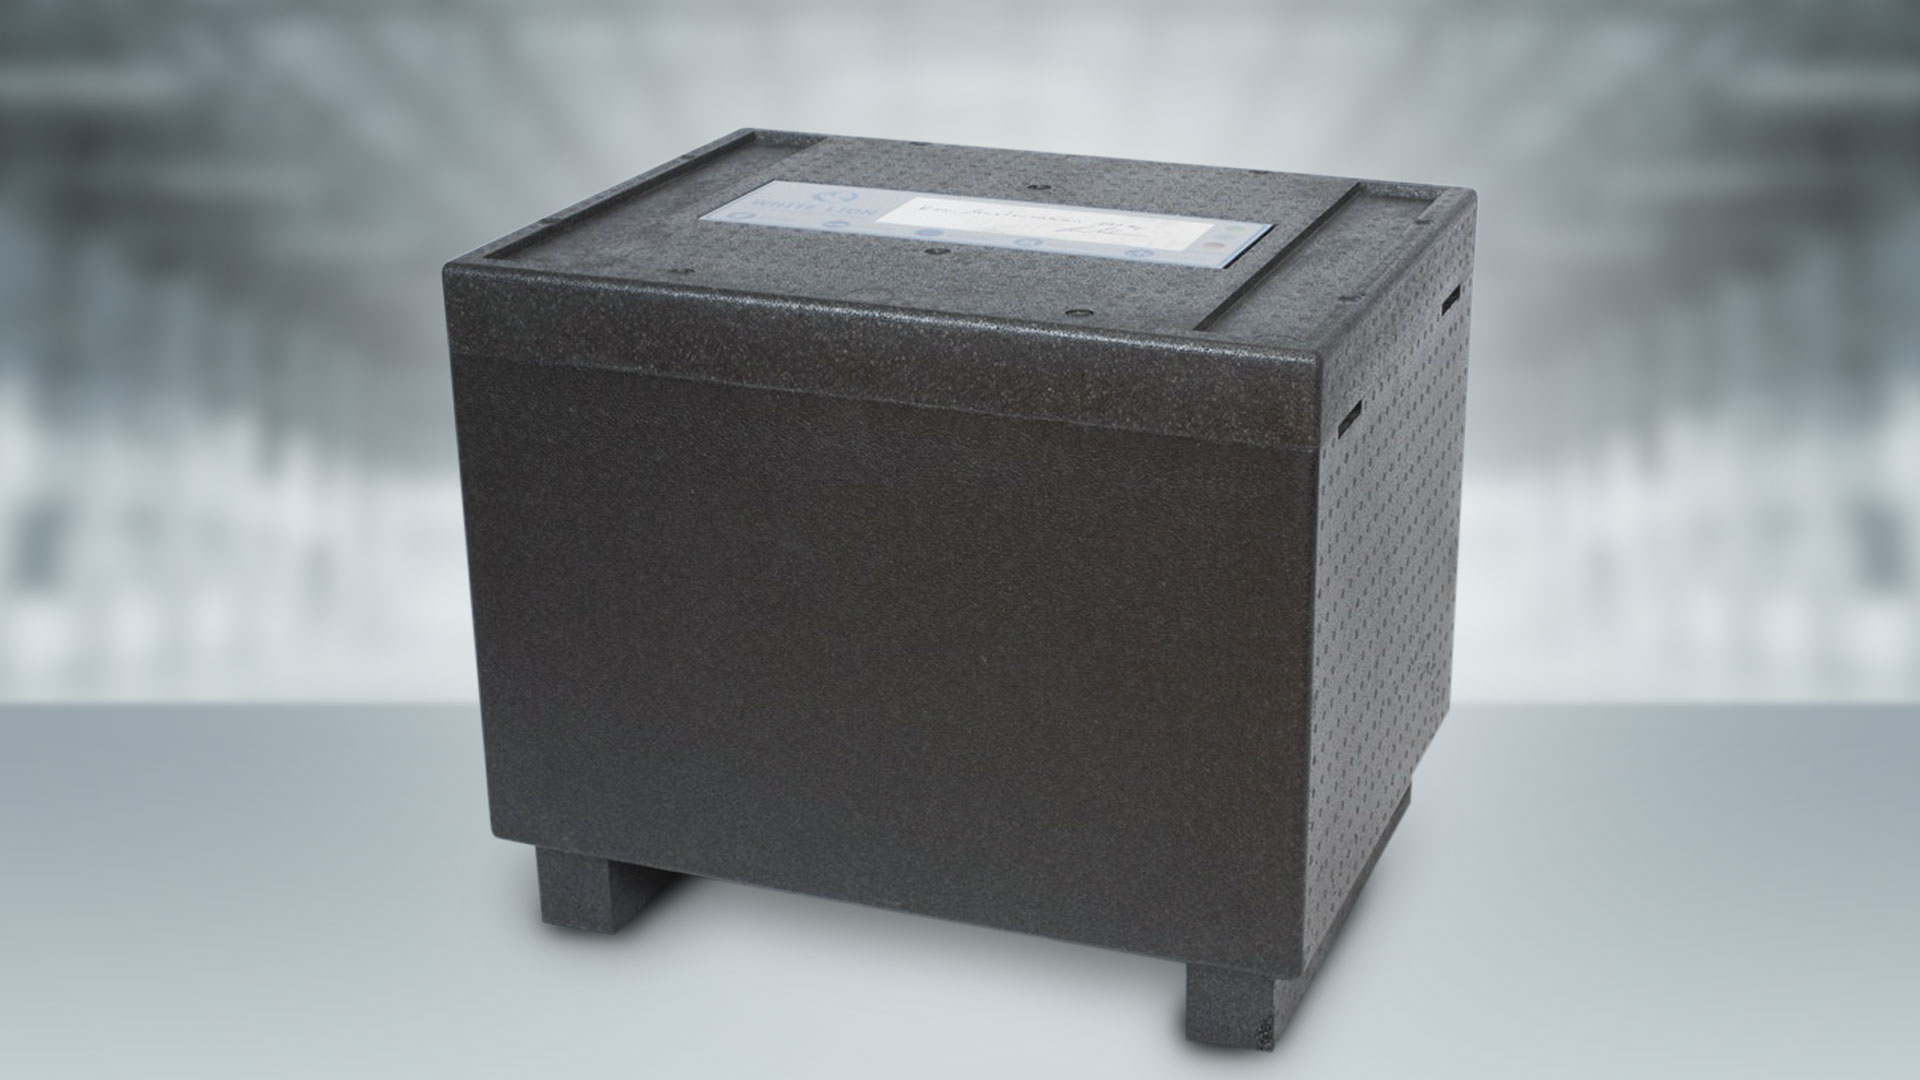 Dry ice transport box White Lion Black Box 100